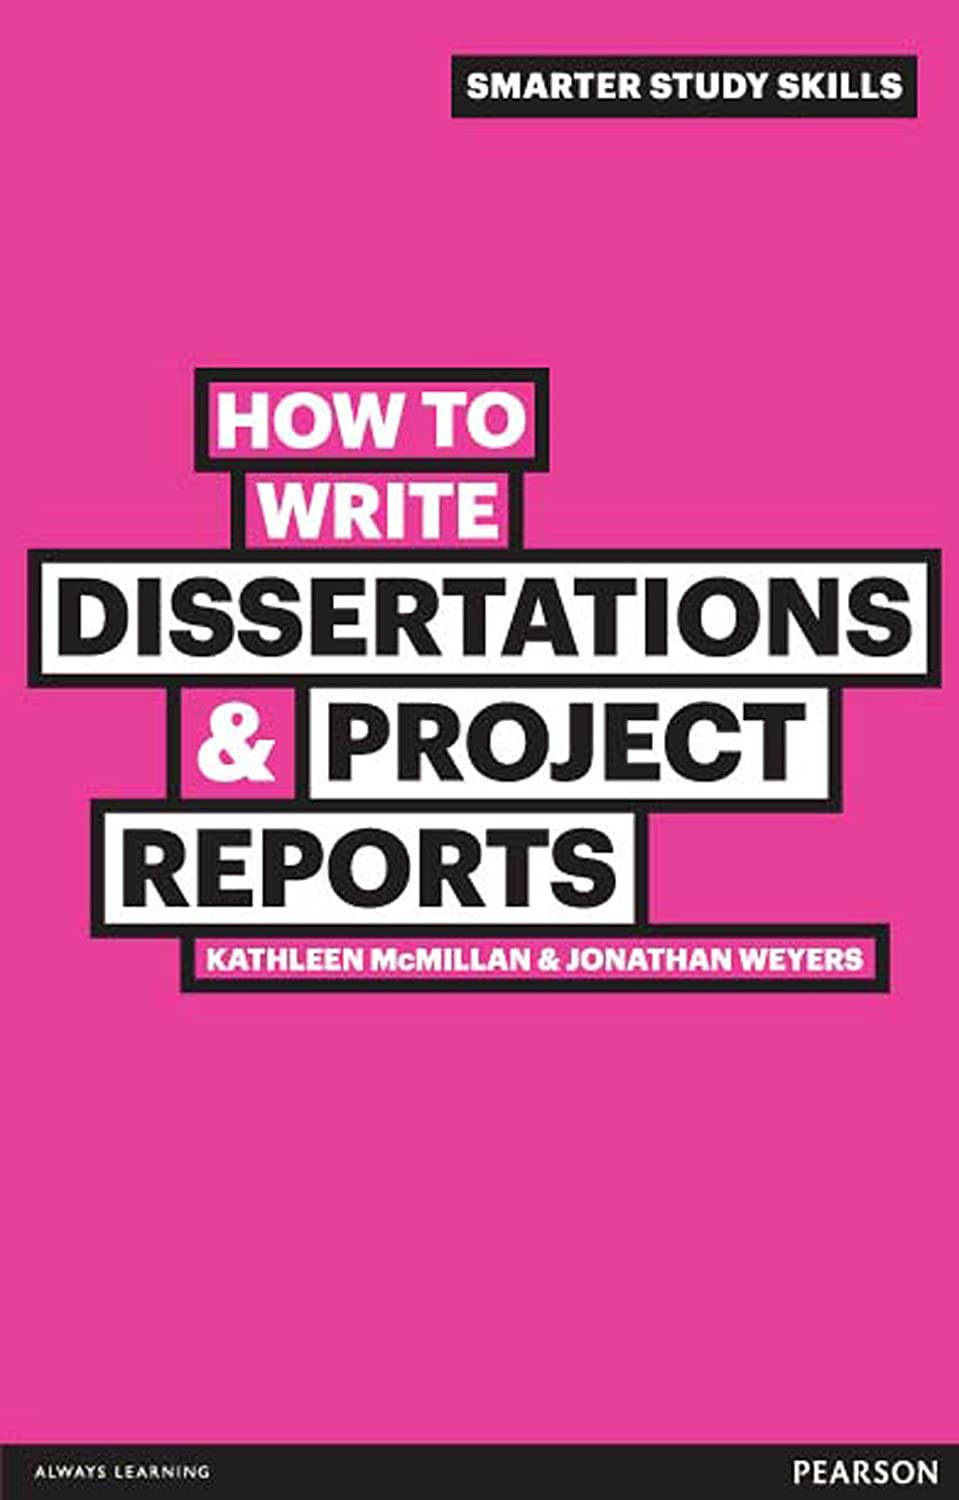 How To Write Dissertations And Project Reports